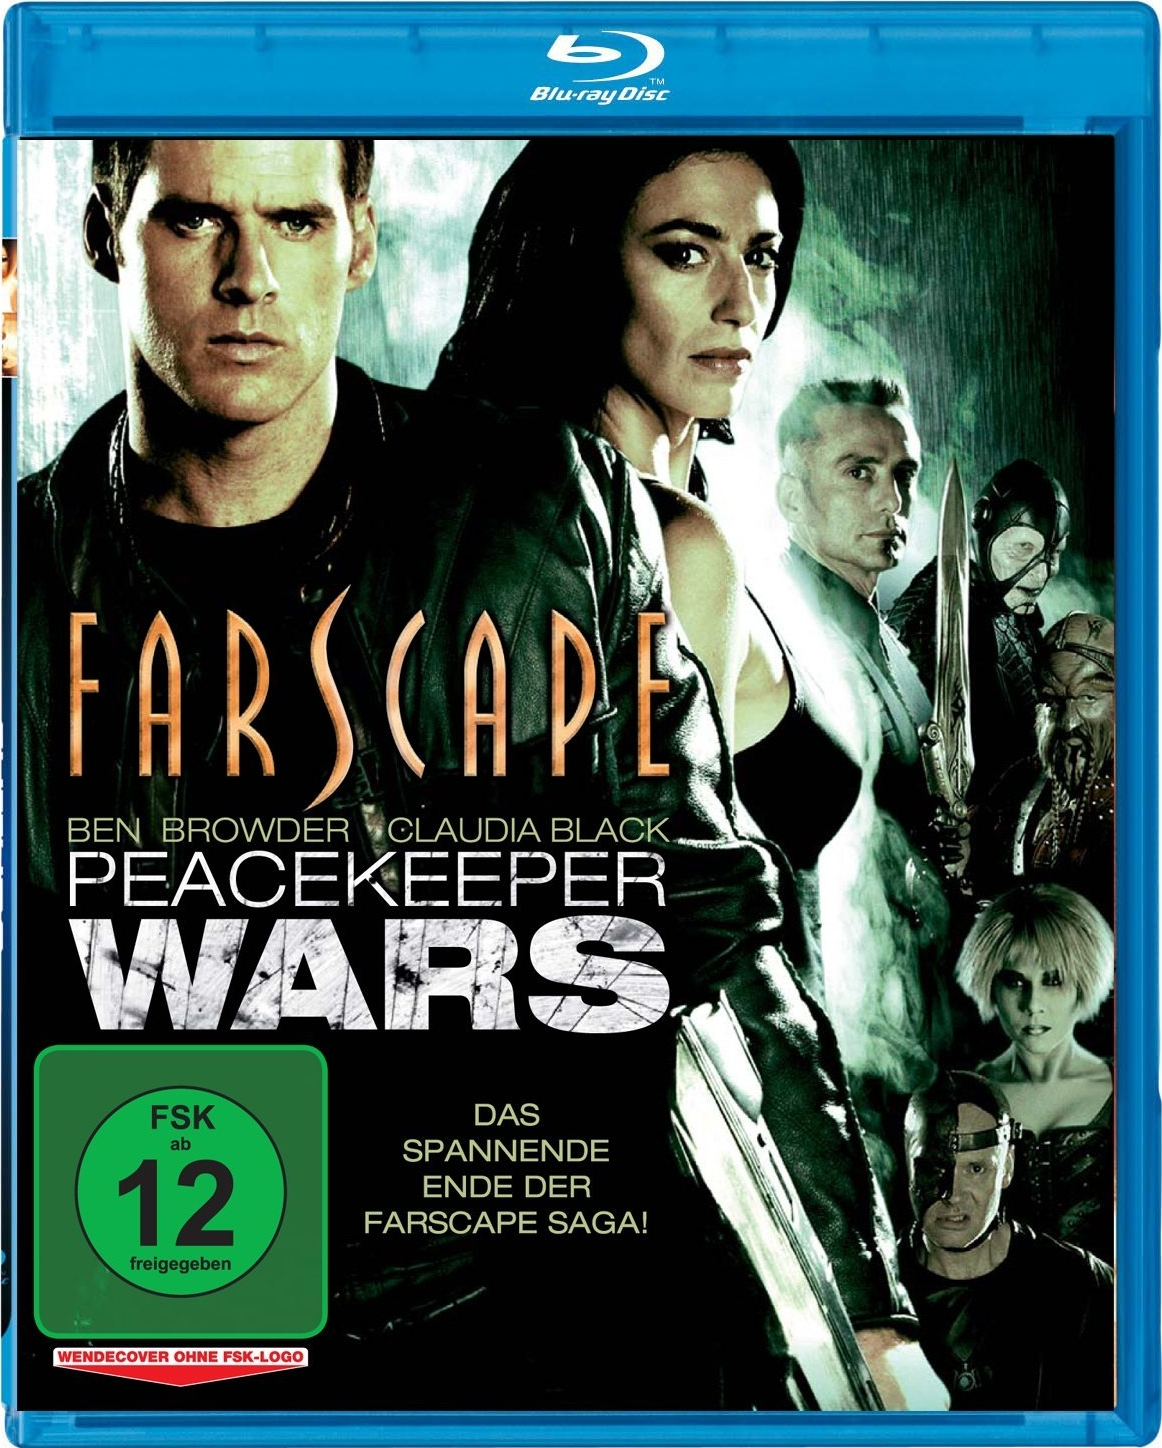 Farscape: The Peacekeeper Wars (2004) ταινιες online seires oipeirates greek subs